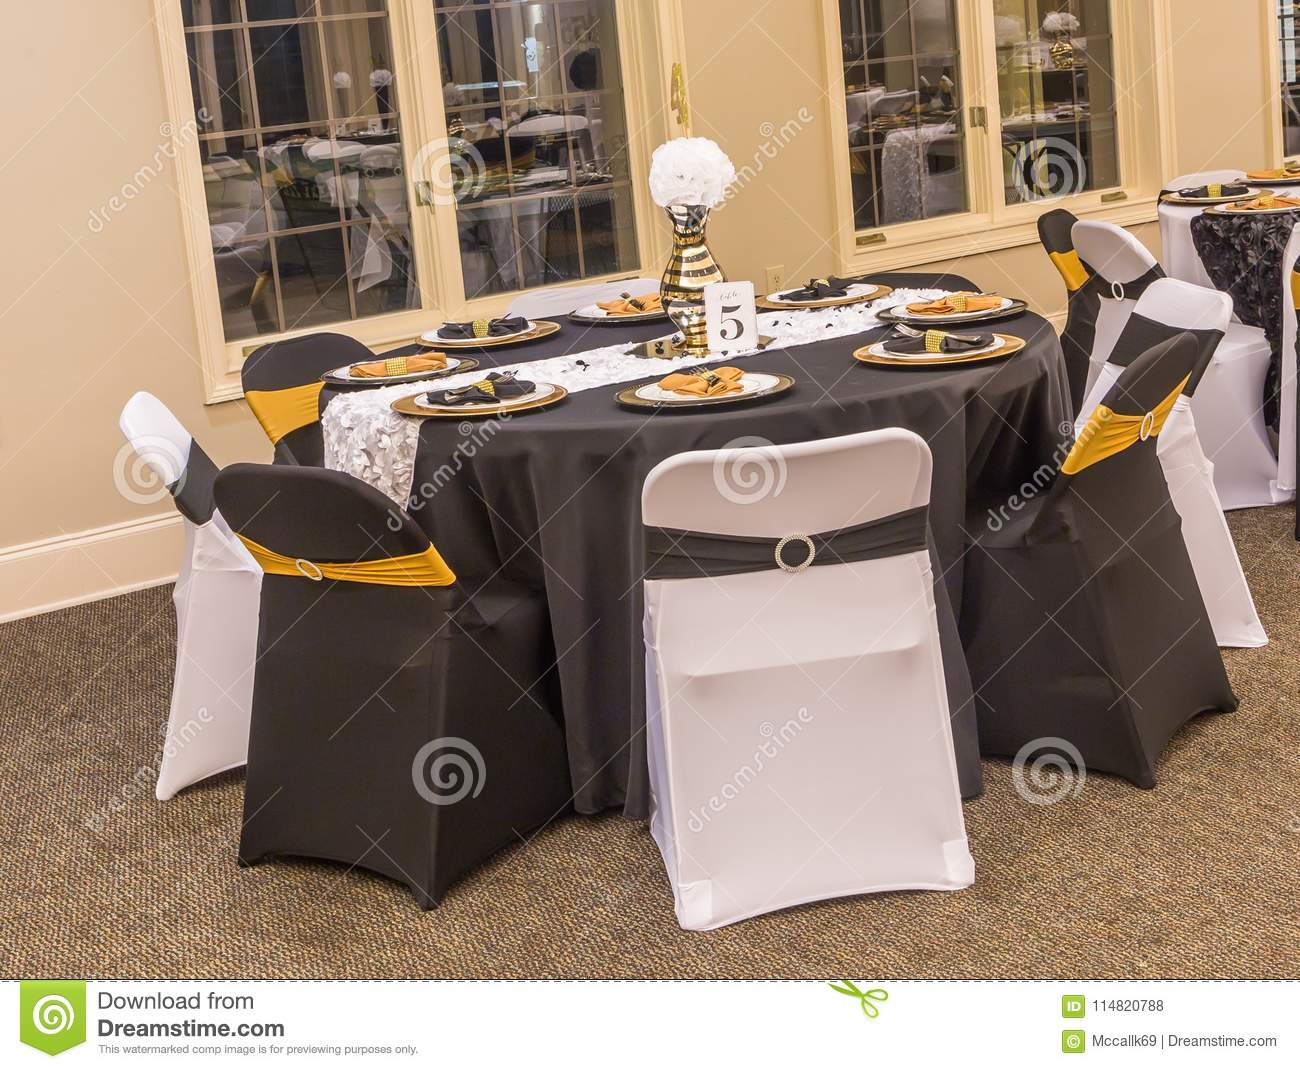 Black, White, And Gold Themed Event Decor Stock Photo - Image of